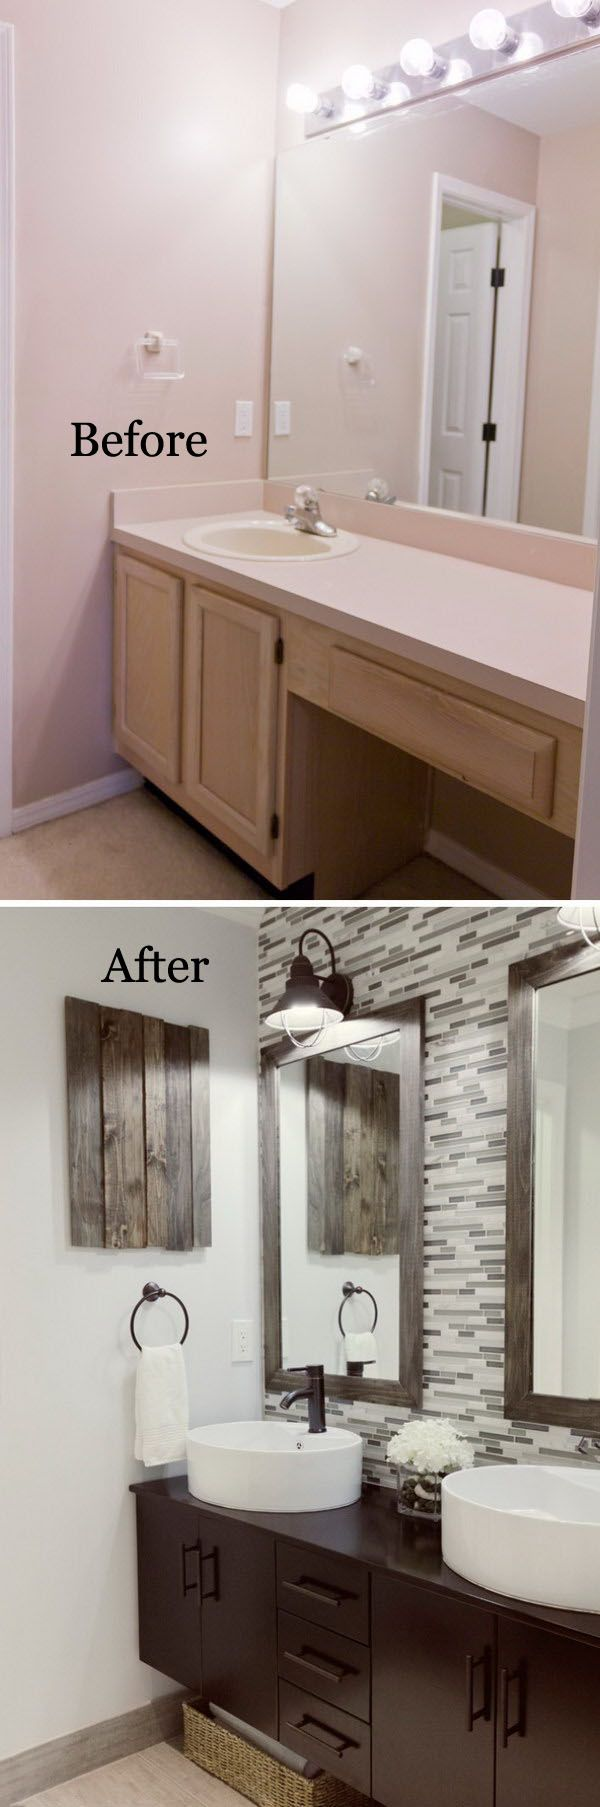 Diy Bathroom Remodel Ideas best 25+ diy bathroom remodel ideas on pinterest | rust update